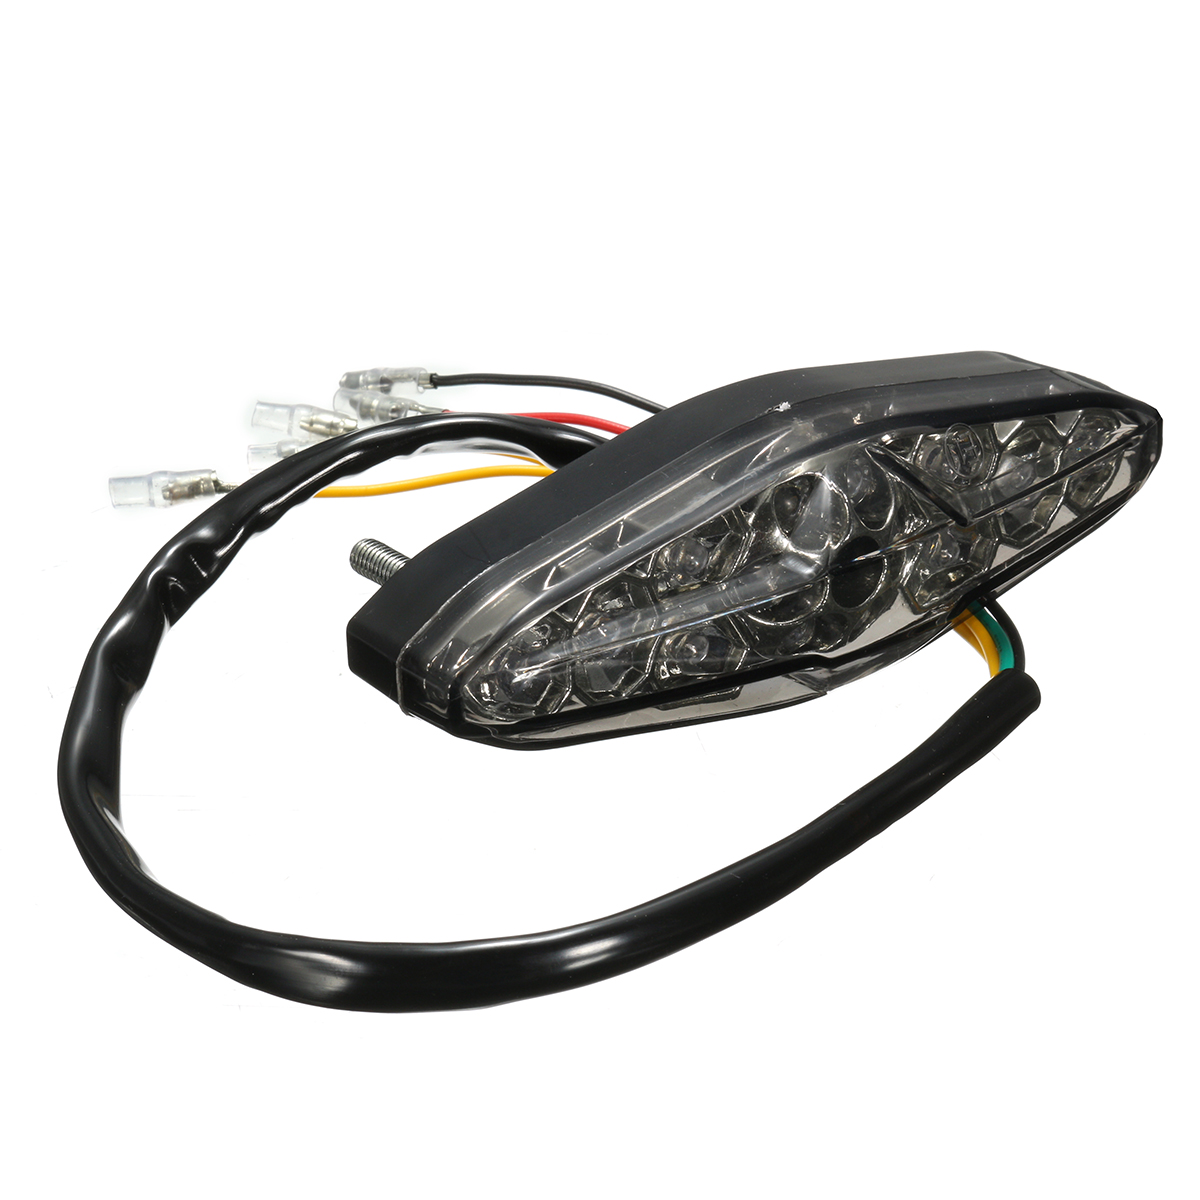 Brake Light Wiring With 3 Wire Turn Signal Help The Hamb